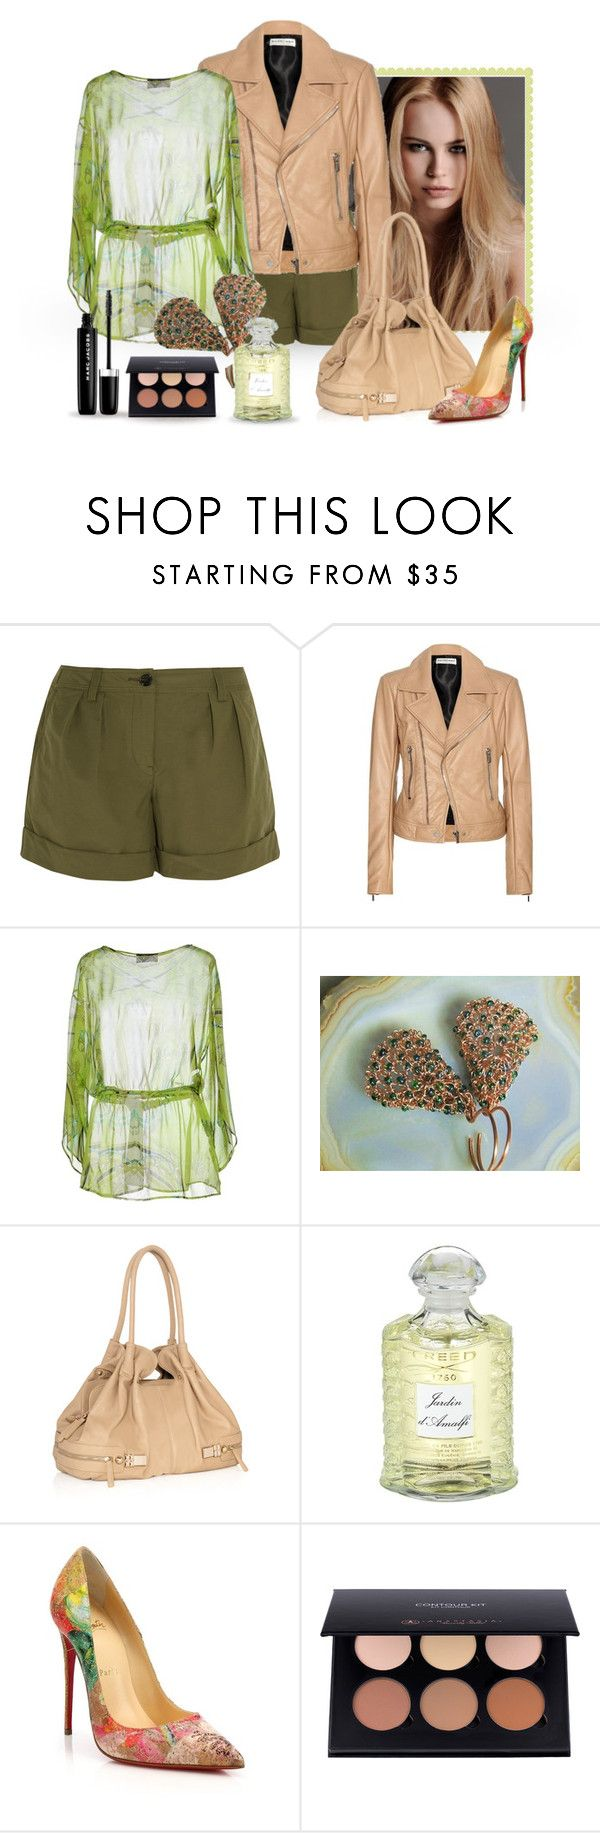 """Beige & Green"" by styledonna on Polyvore featuring moda, KAROLINA, Burberry, Balenciaga, Clips, JustFab, Creed, Christian Louboutin i Marc Jacobs"